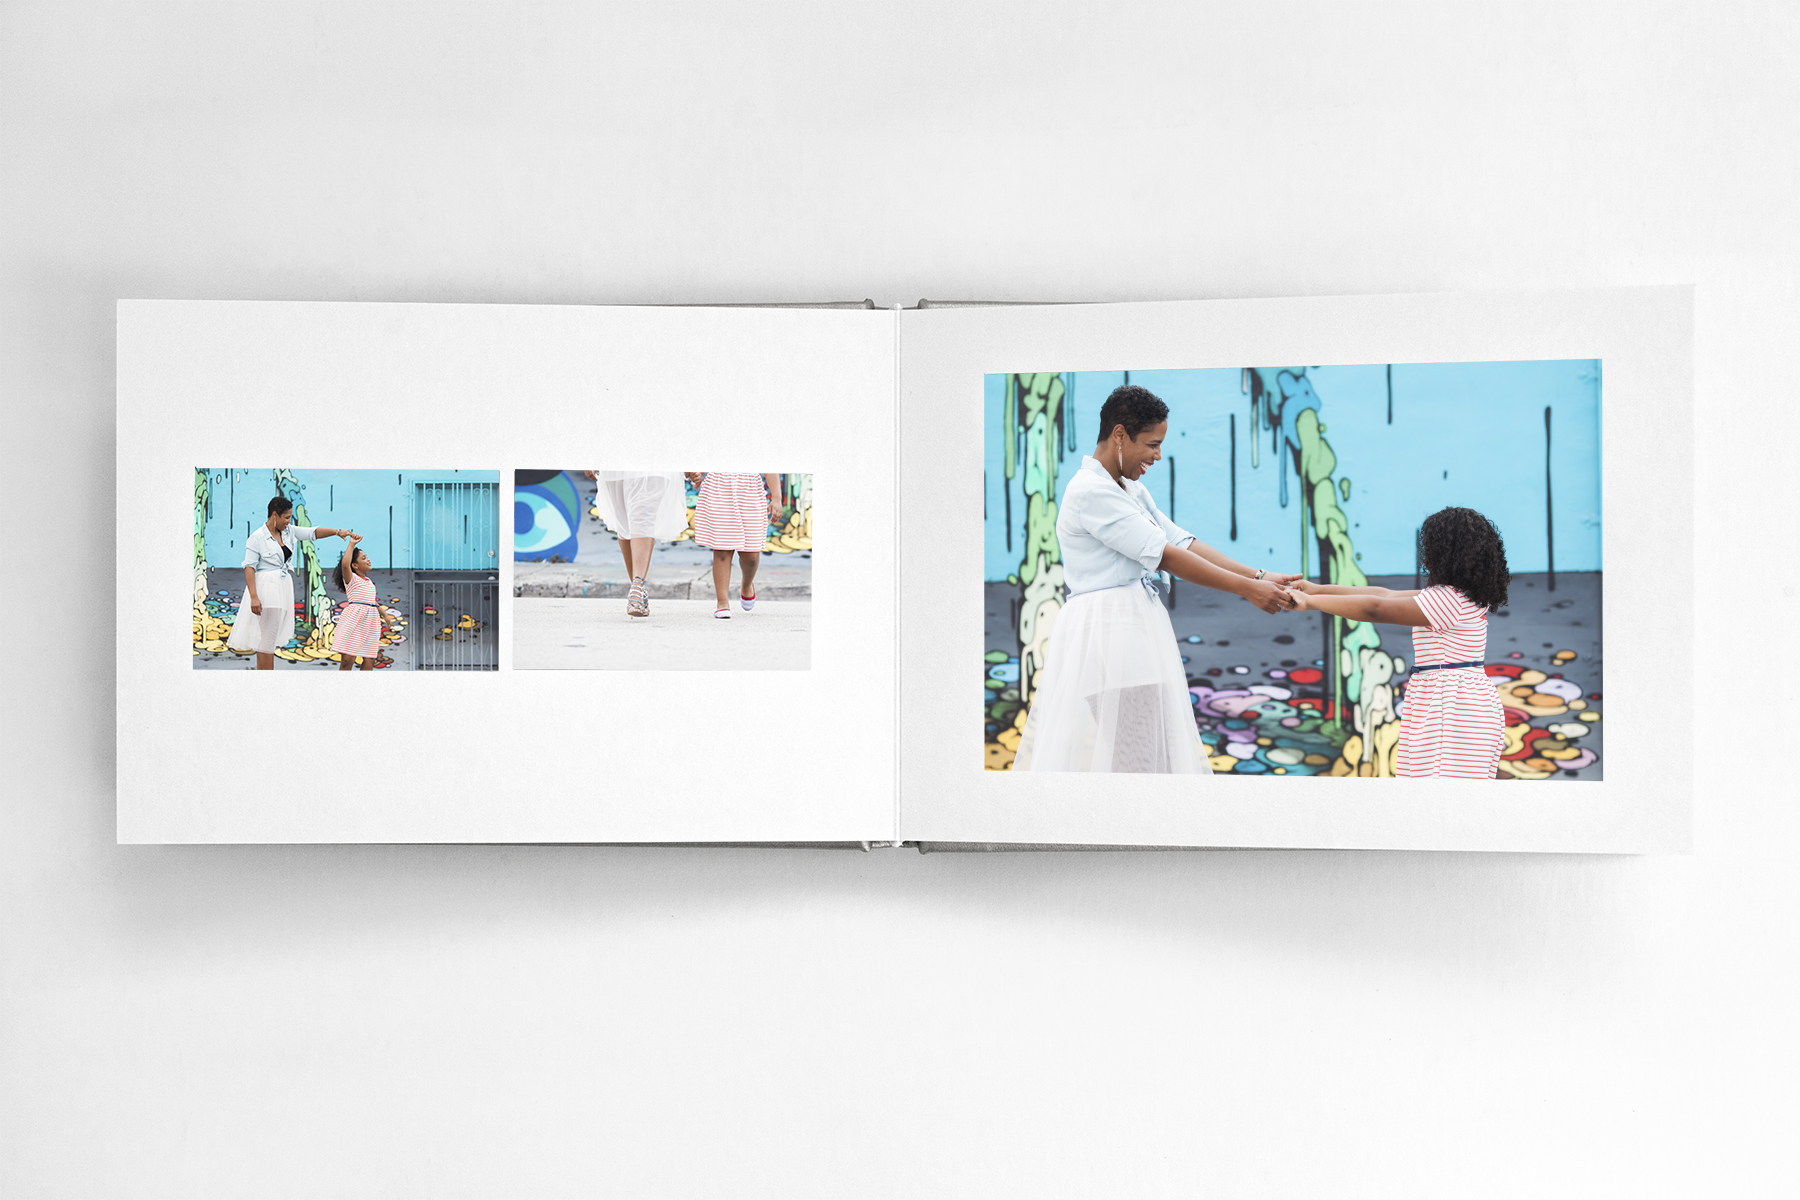 Family portraits in miami-wynwood made into an album of family memories.